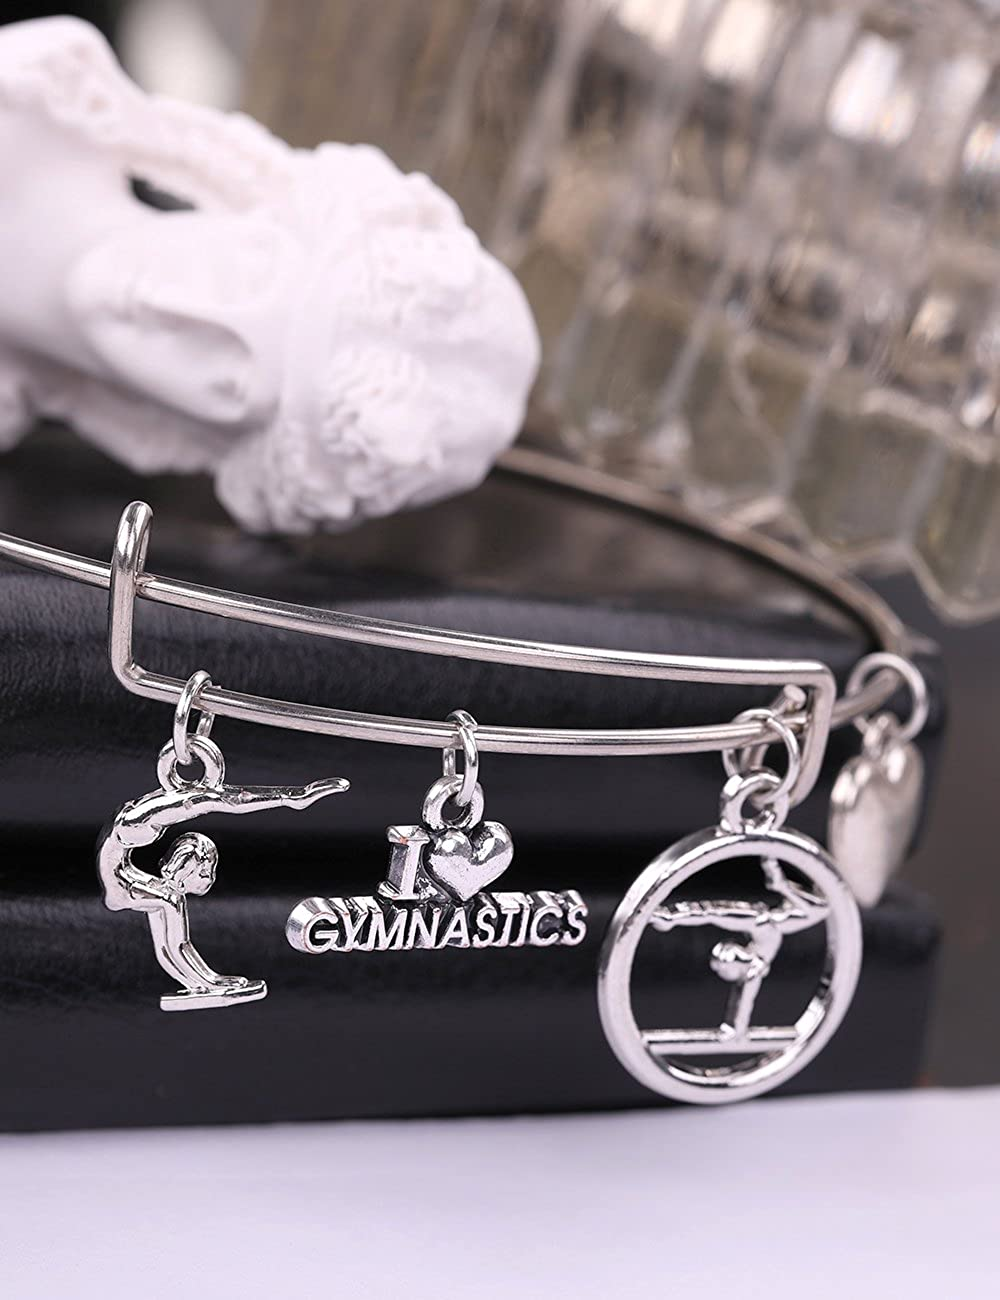 Skyrim I Love Gymnastic Heart Pattern Pendant Stainless Steel DIY Bracelet for Chritmas Gift